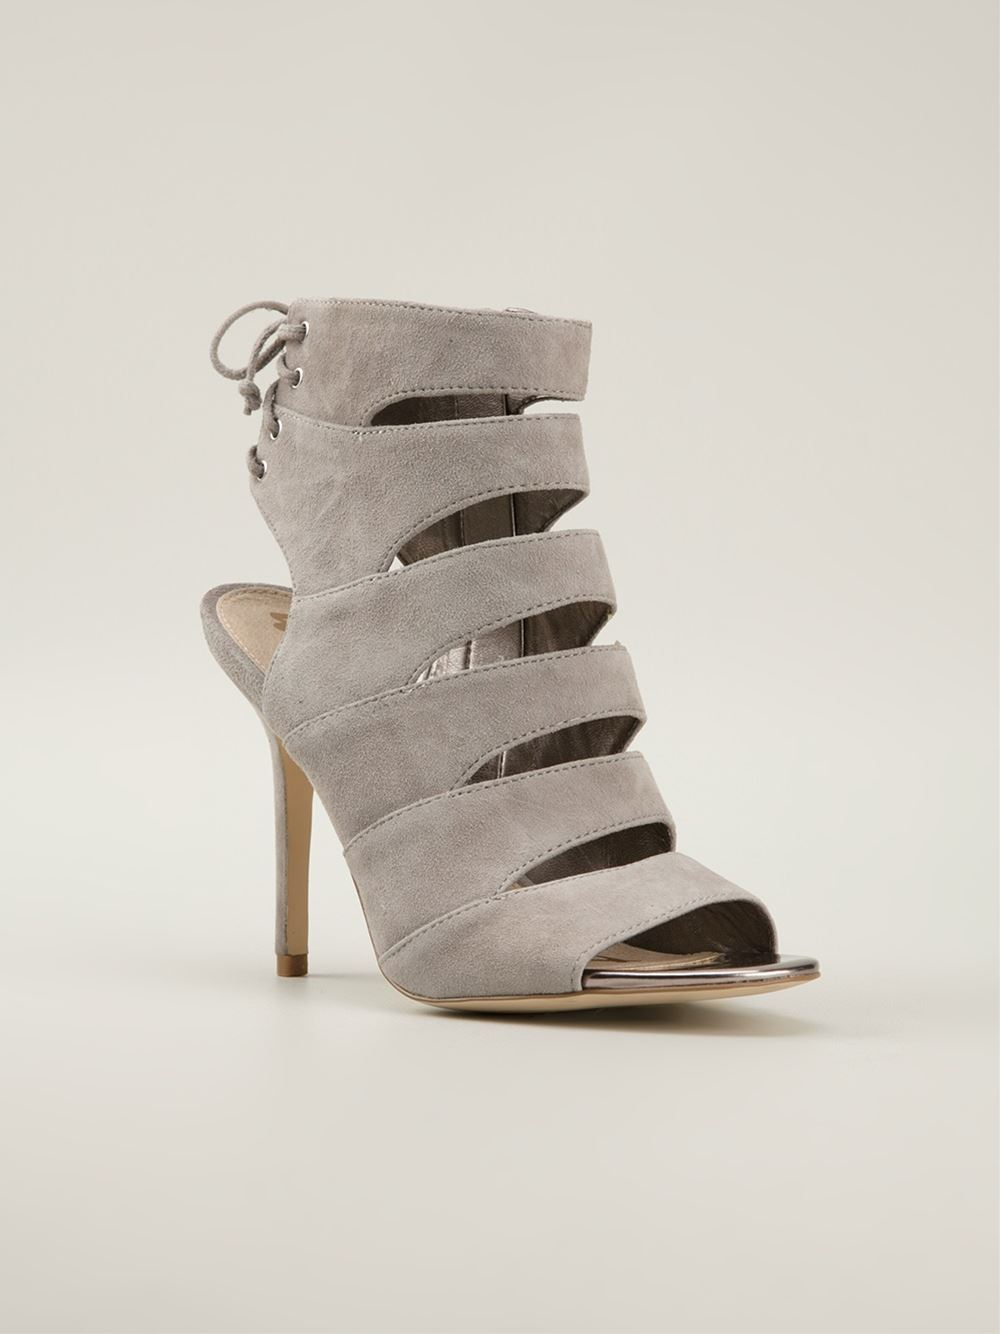 Lyst Sam Edelman Anastasia Cut Out Sandals In Gray